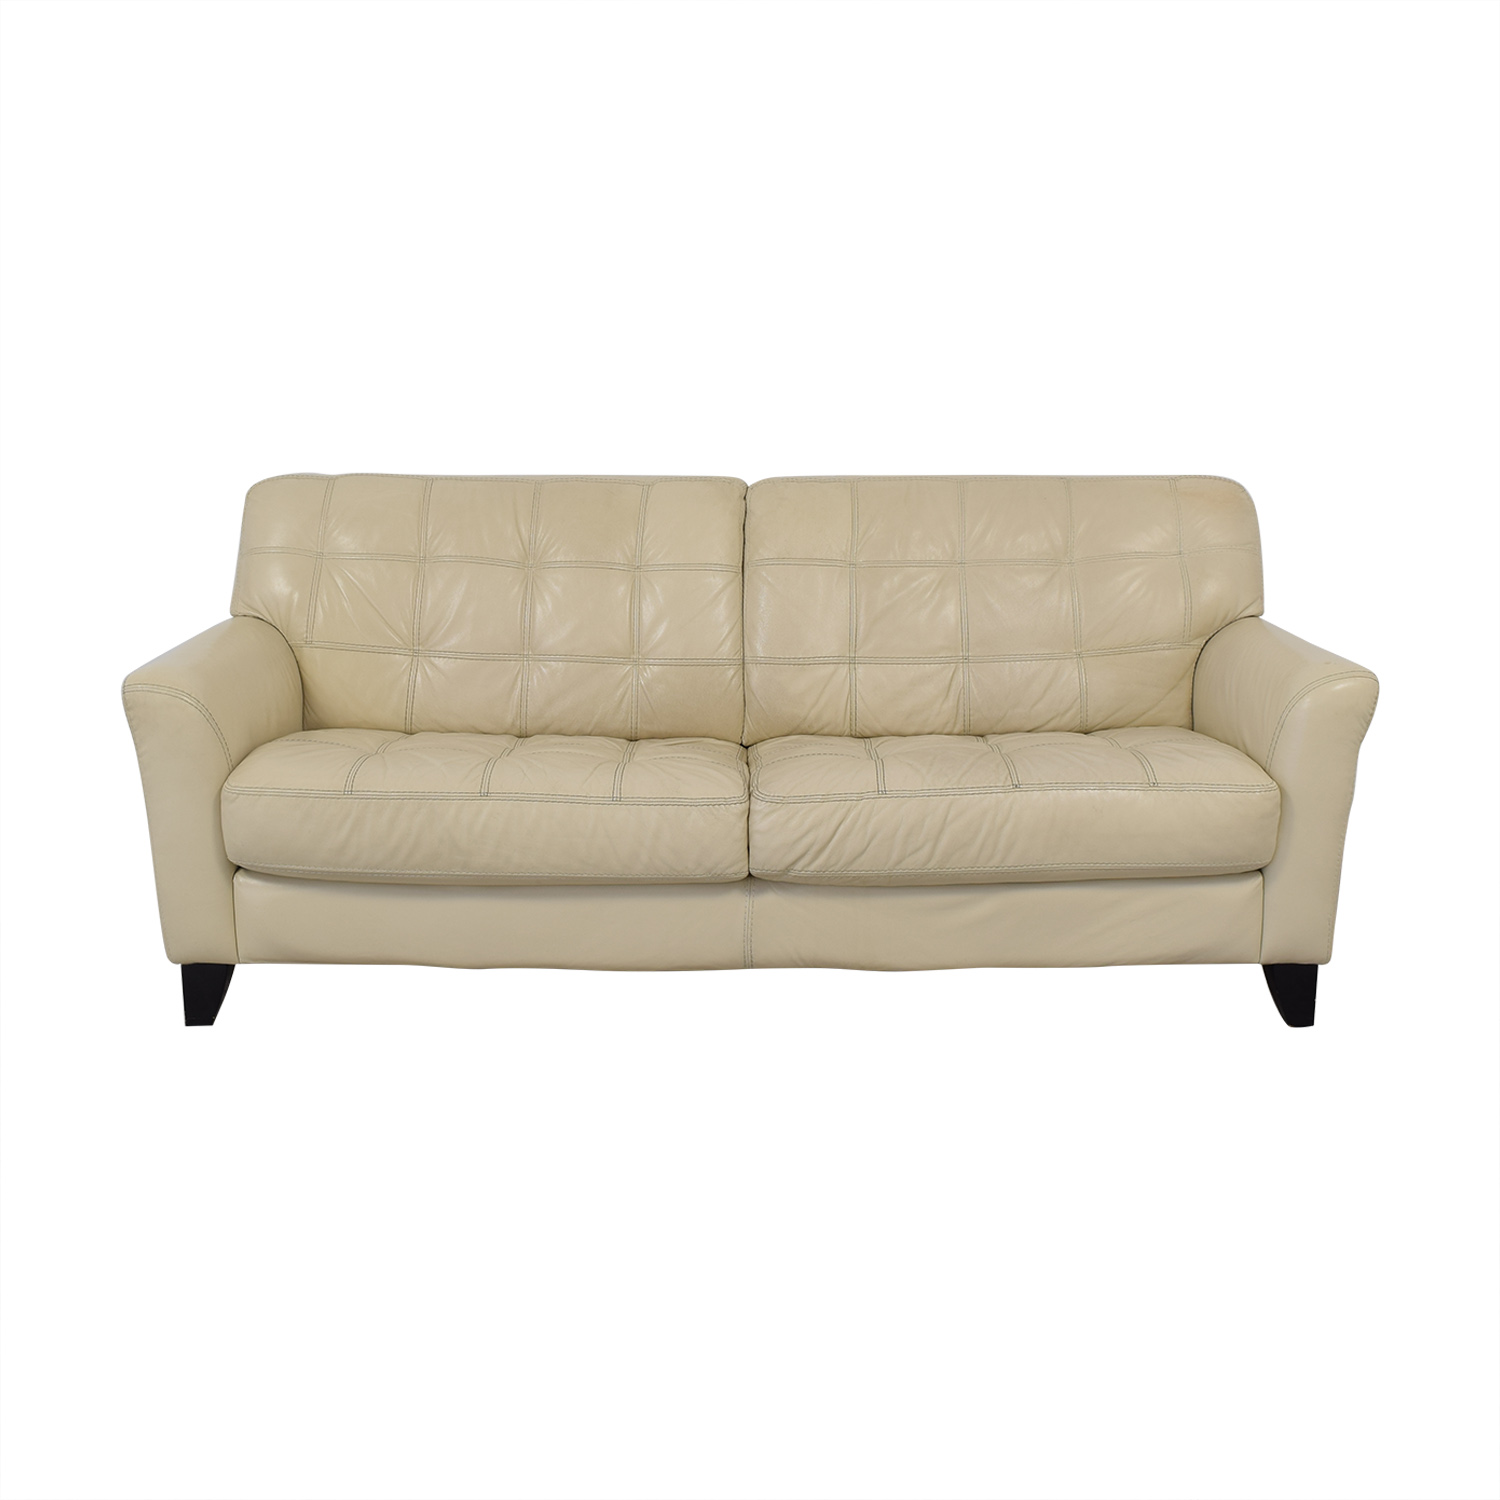 shop Macy's Chateau d'Ax Leather Sofa Chateau d'Ax